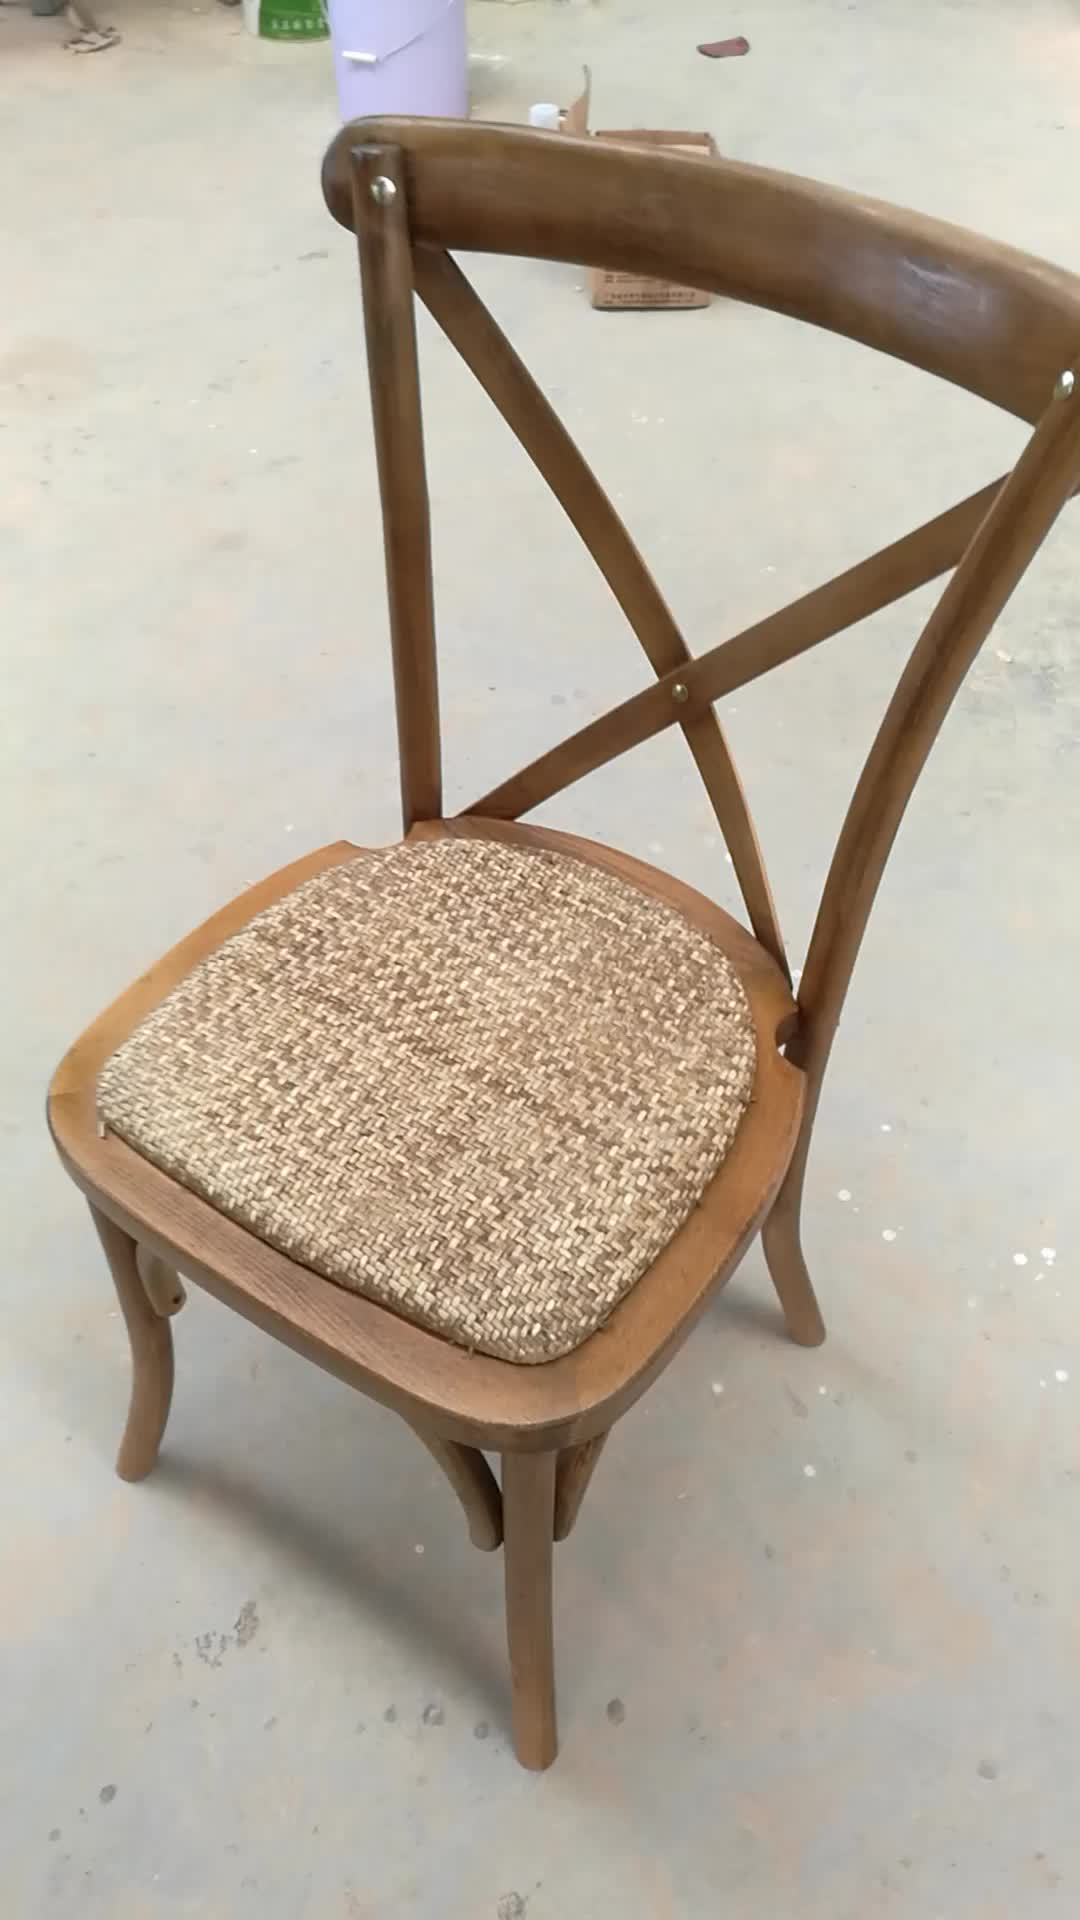 No Complain Cheap Hotel Dining Stackable Wood Cross Back Chair